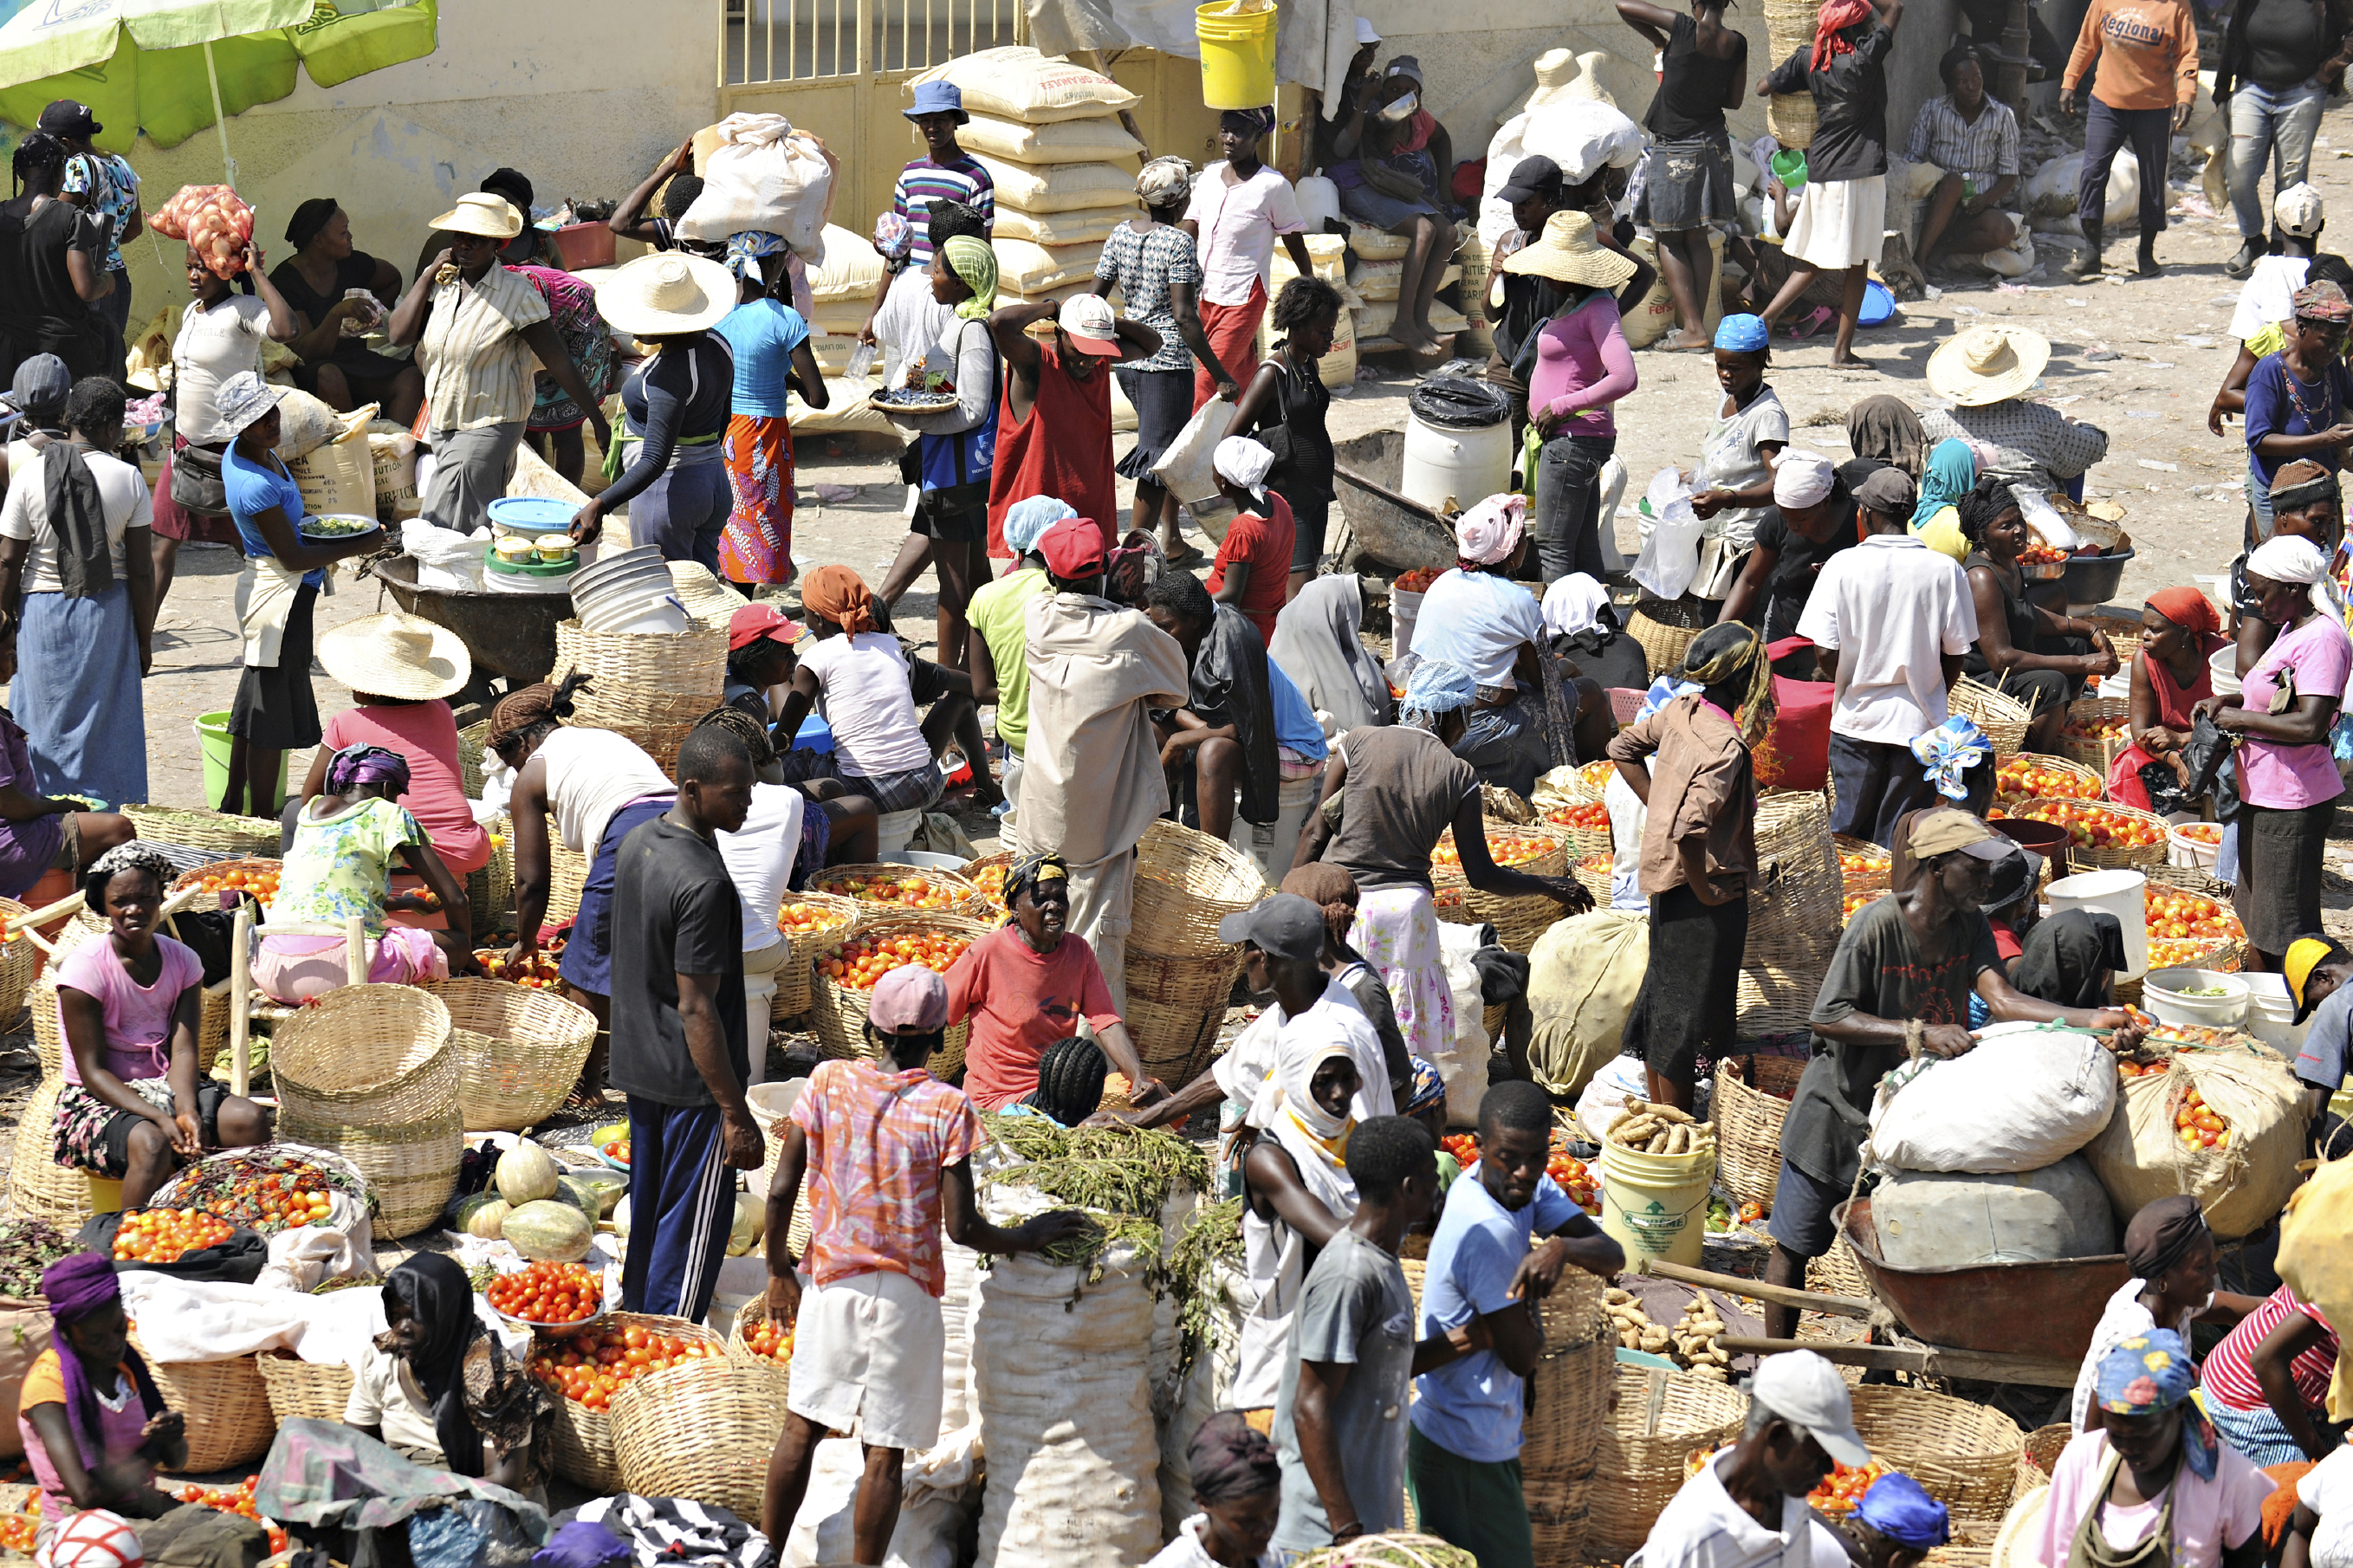 An overhead view of a busy marketplace on Feb, 12, 2014 in St. Marc, Haiti.